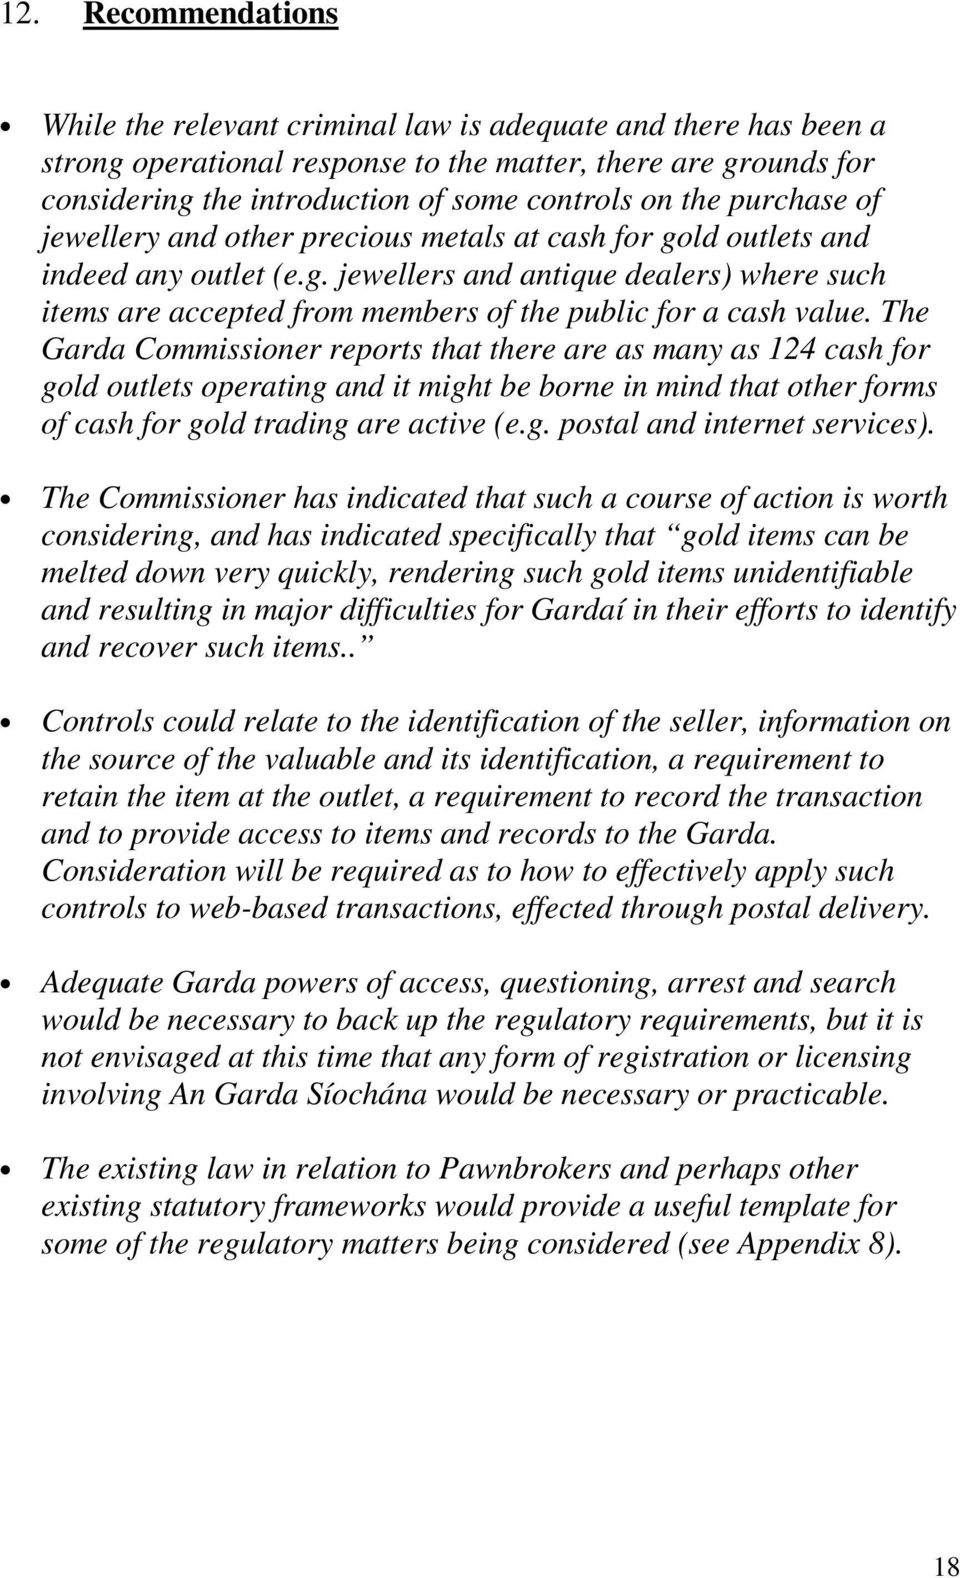 The Garda Commissioner reports that there are as many as 124 cash for gold outlets operating and it might be borne in mind that other forms of cash for gold trading are active (e.g. postal and internet services).